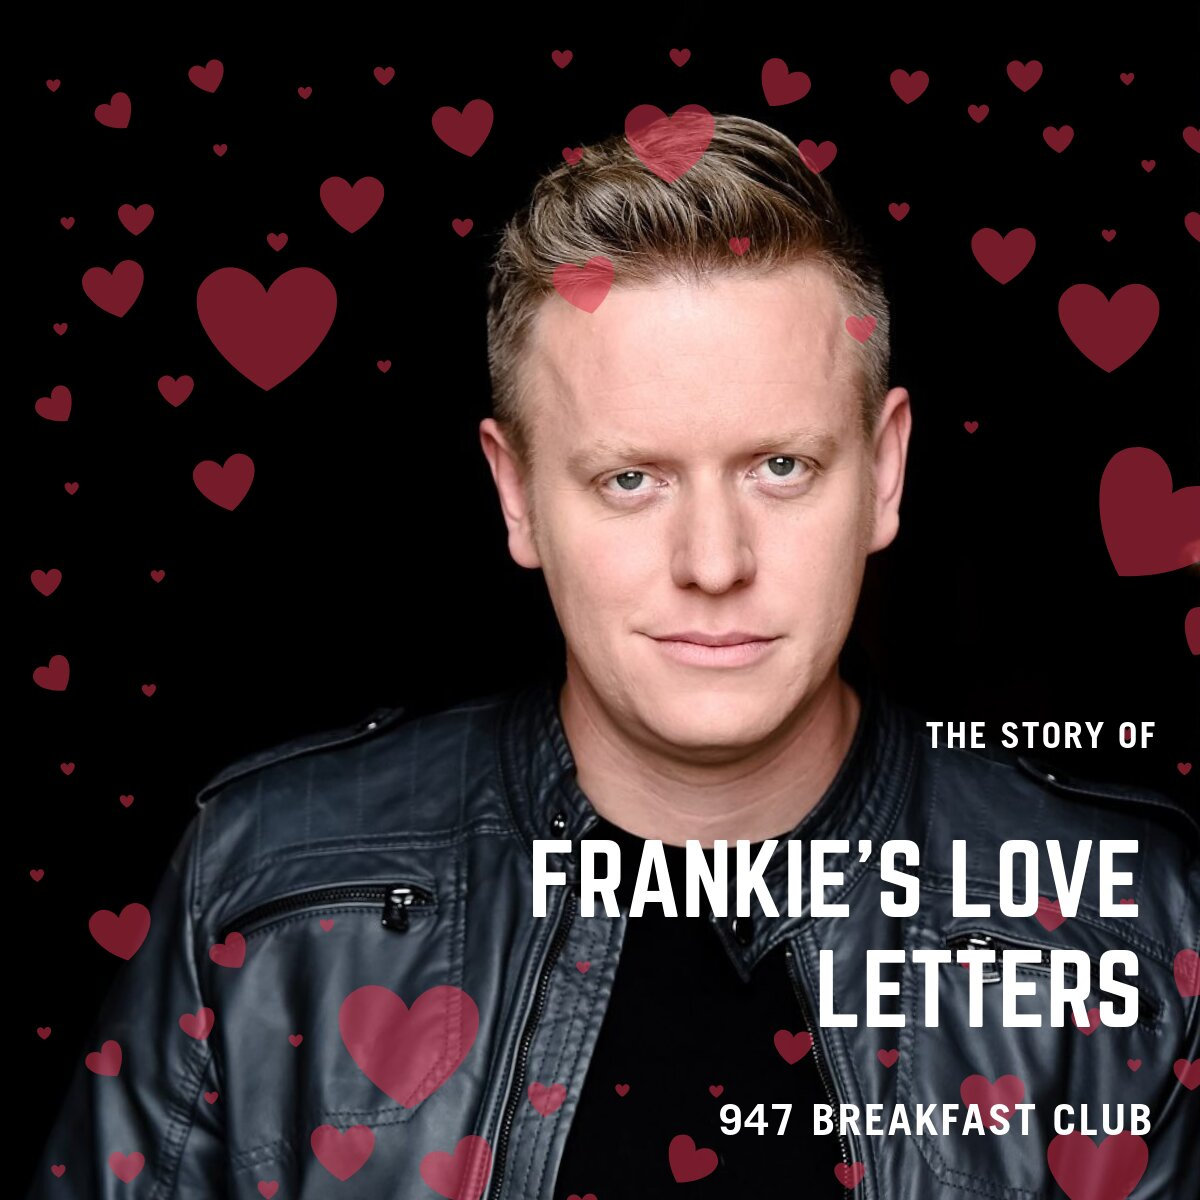 The story of Frankie's old love letters...